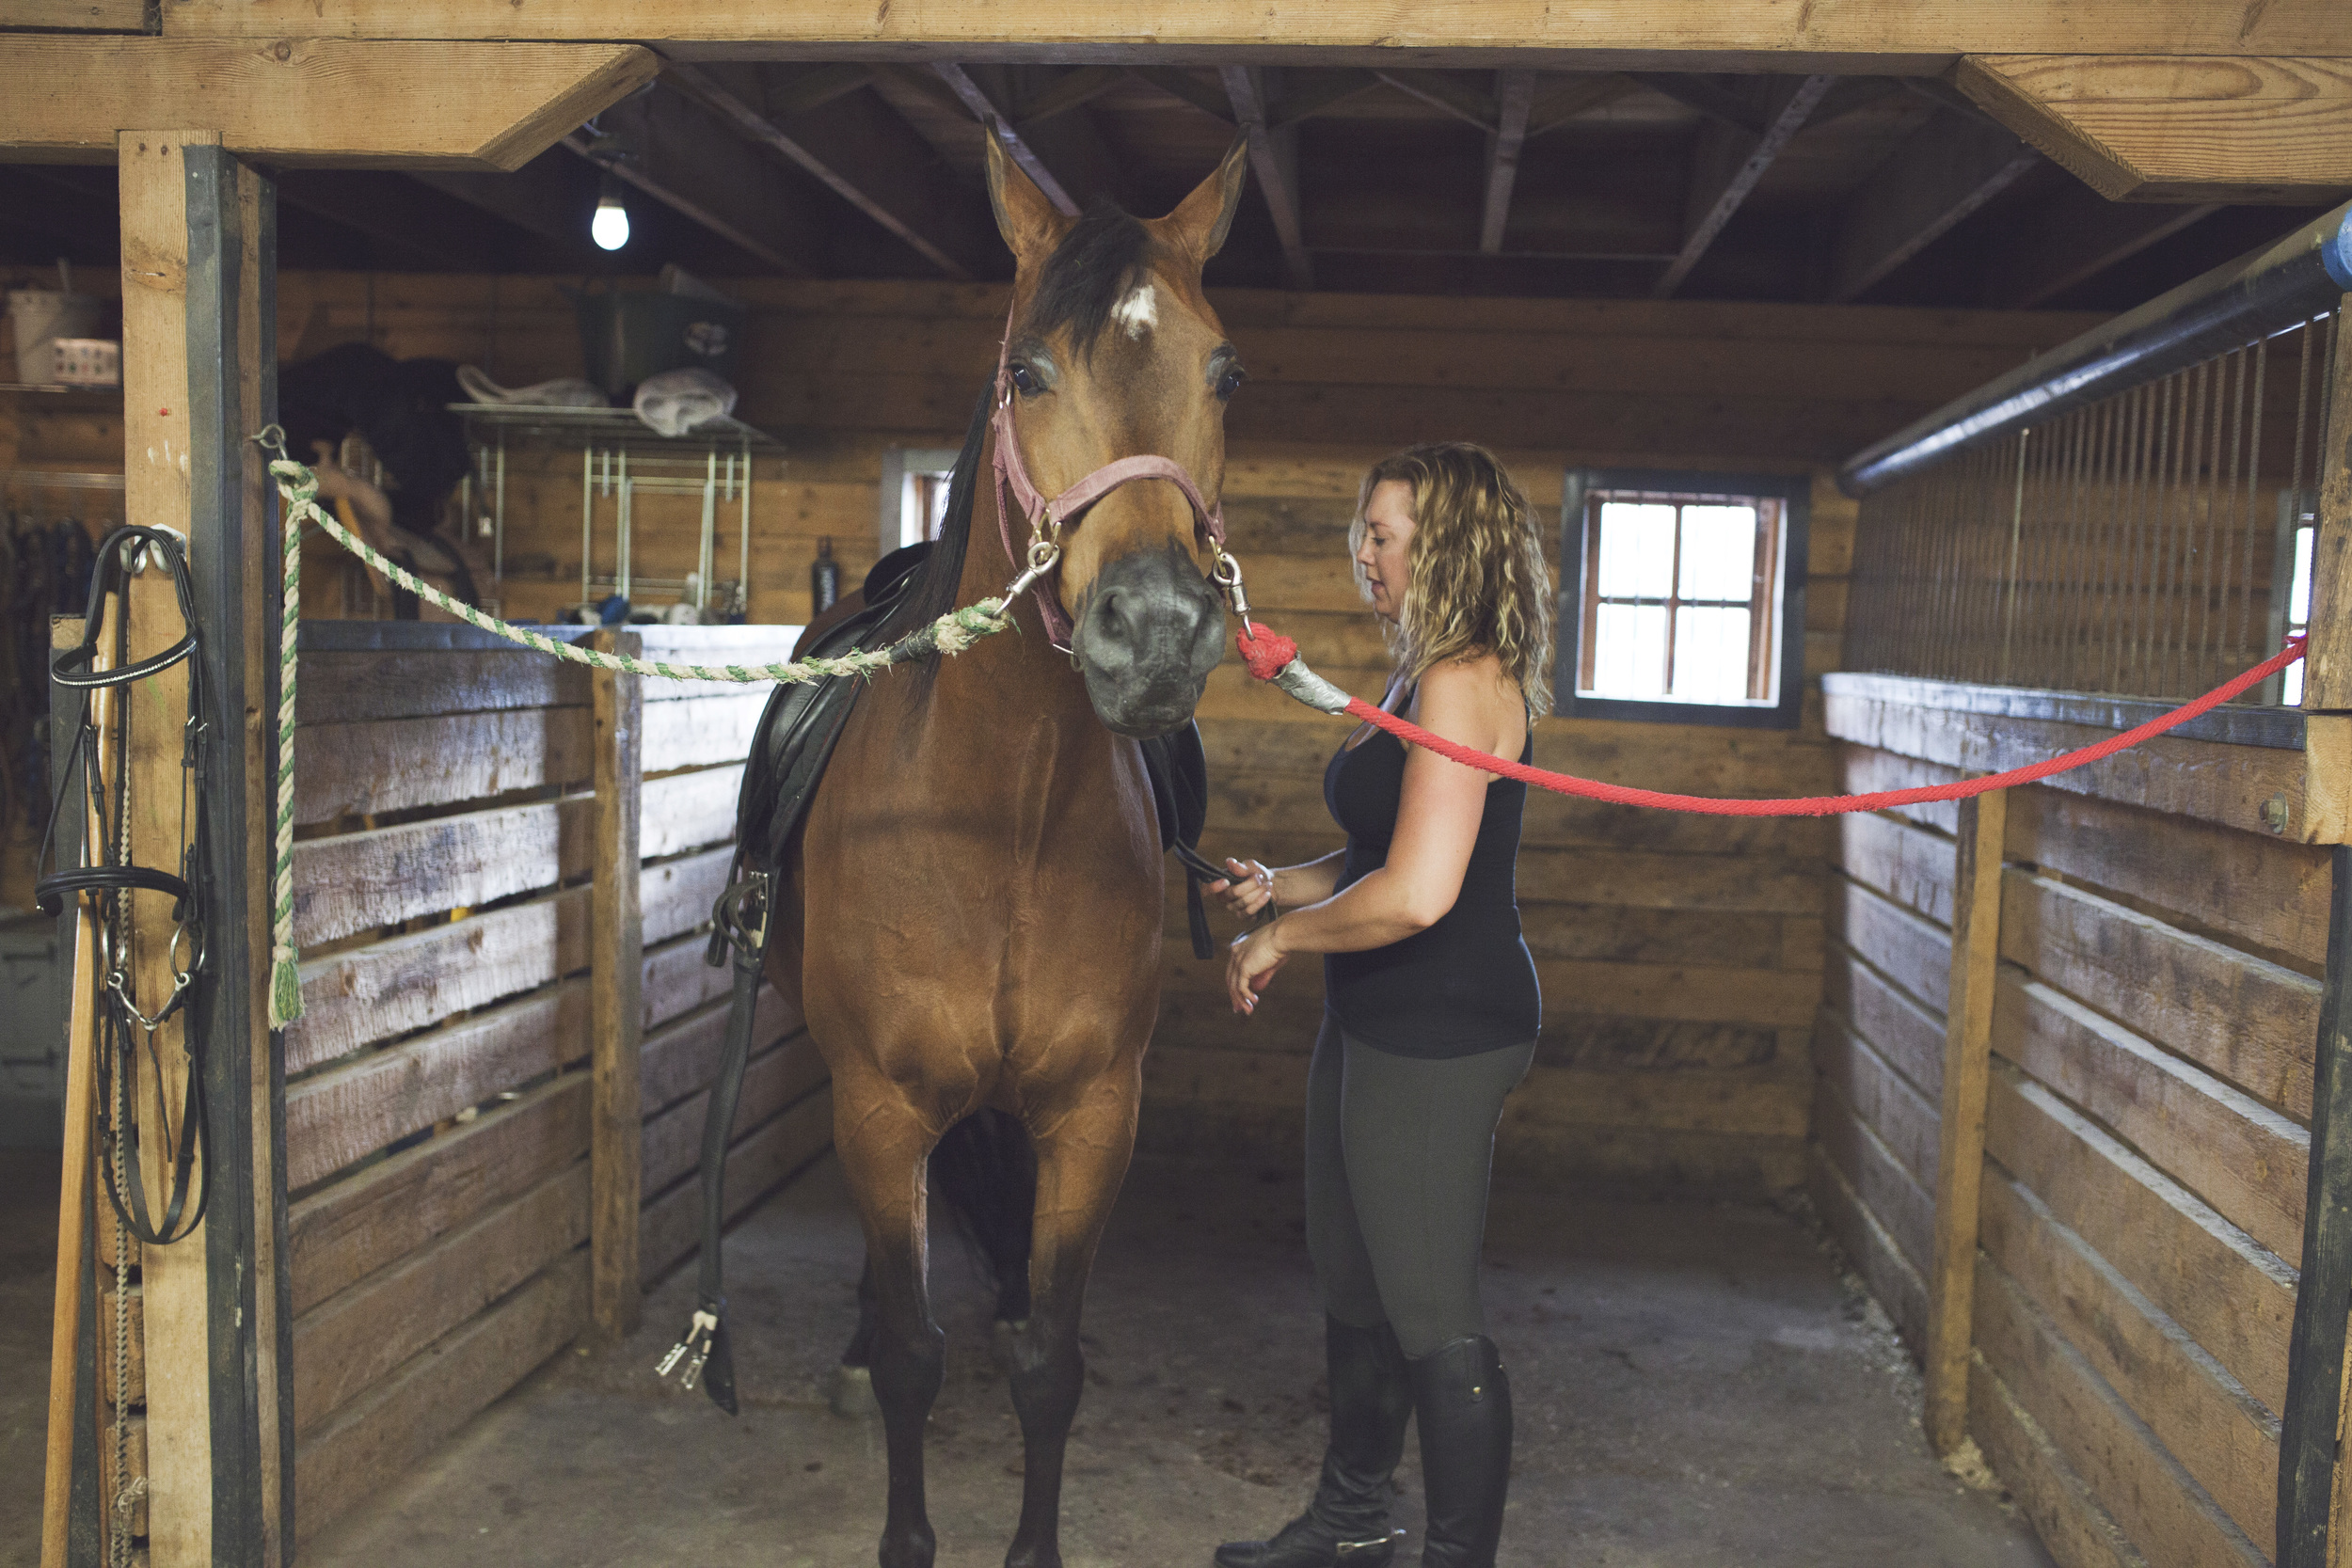 Good horsemanship means taking good care to make sure the horse is comfortable, clean and cooled out after a ride. It's also a great time for bonding - with the horse and with people. We really started chatting about life when we got into the barn.